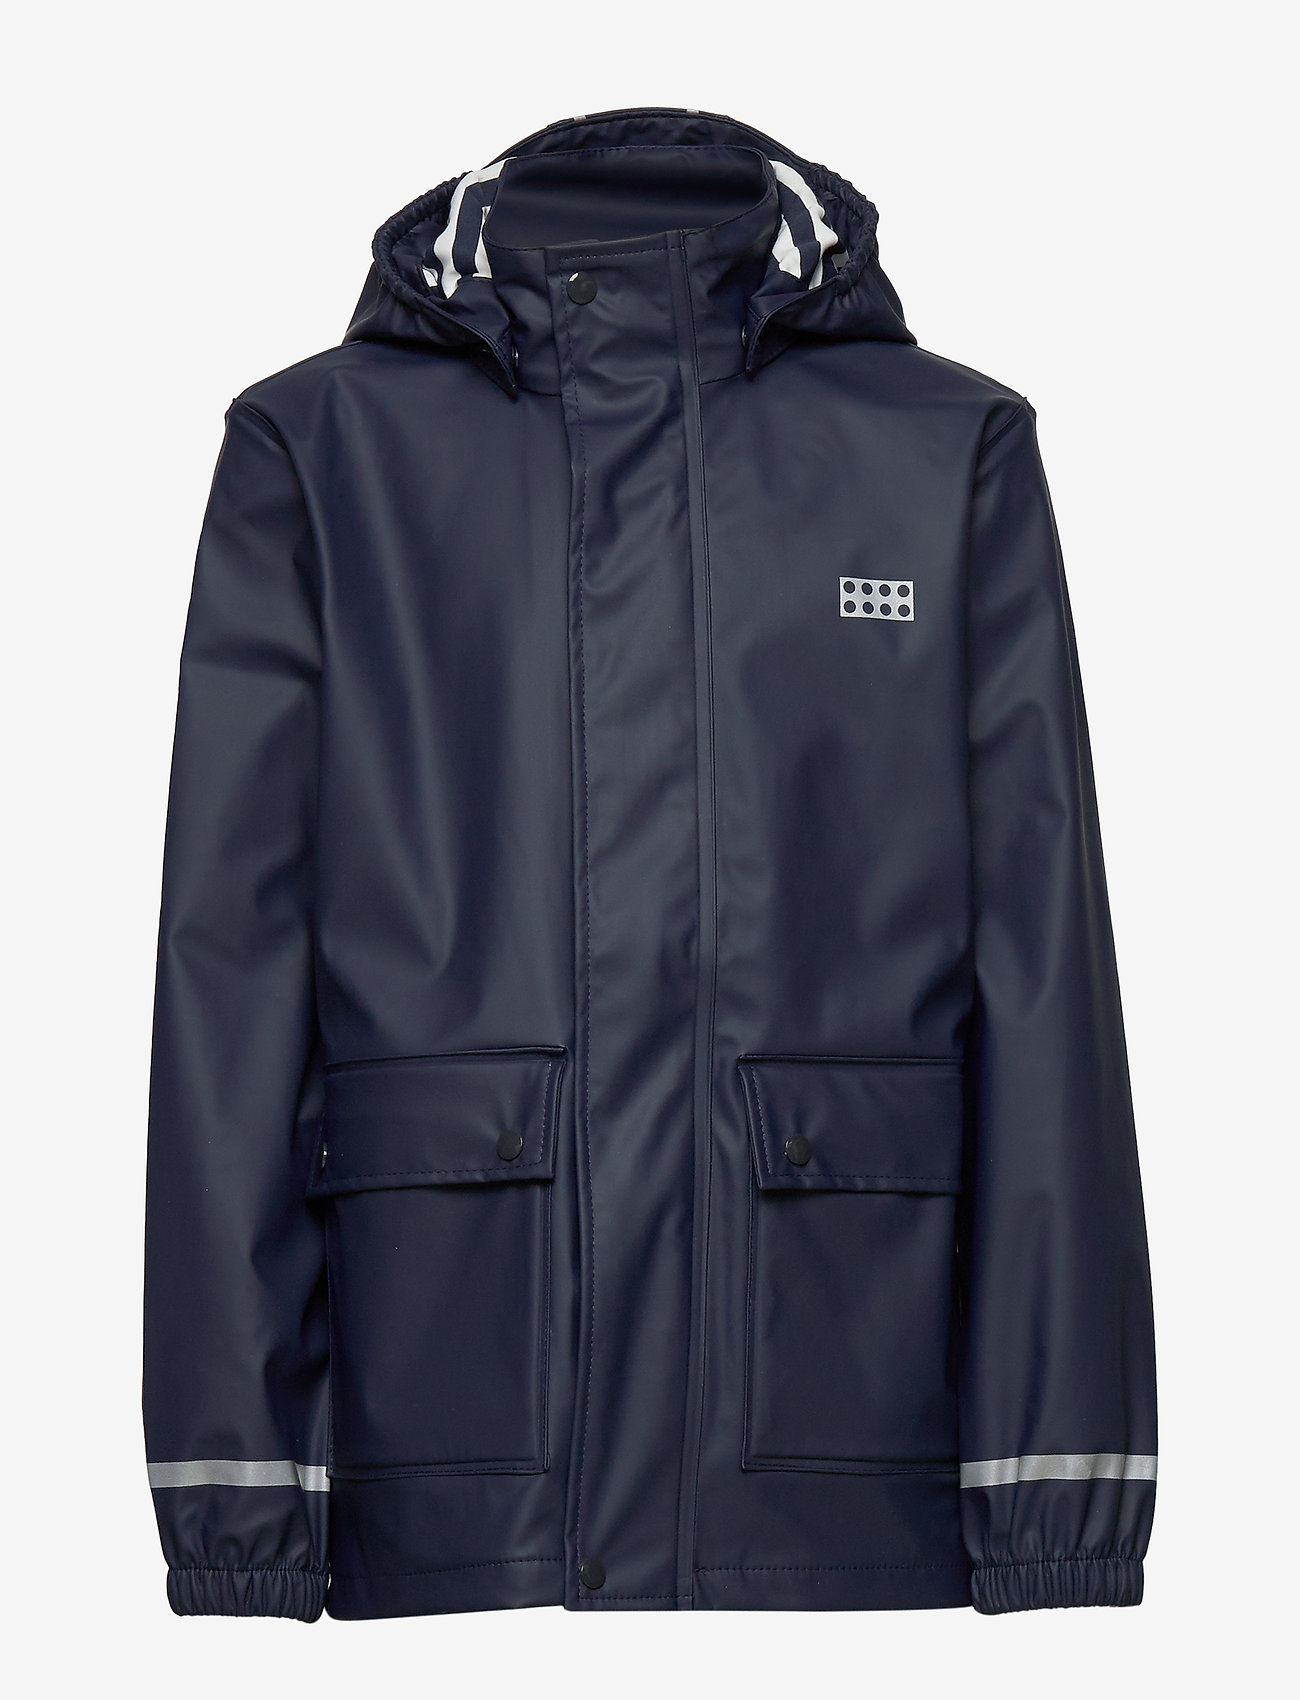 Lego wear - LWJOSHUA 212 - RAIN JACKET - jakker - dark navy - 1